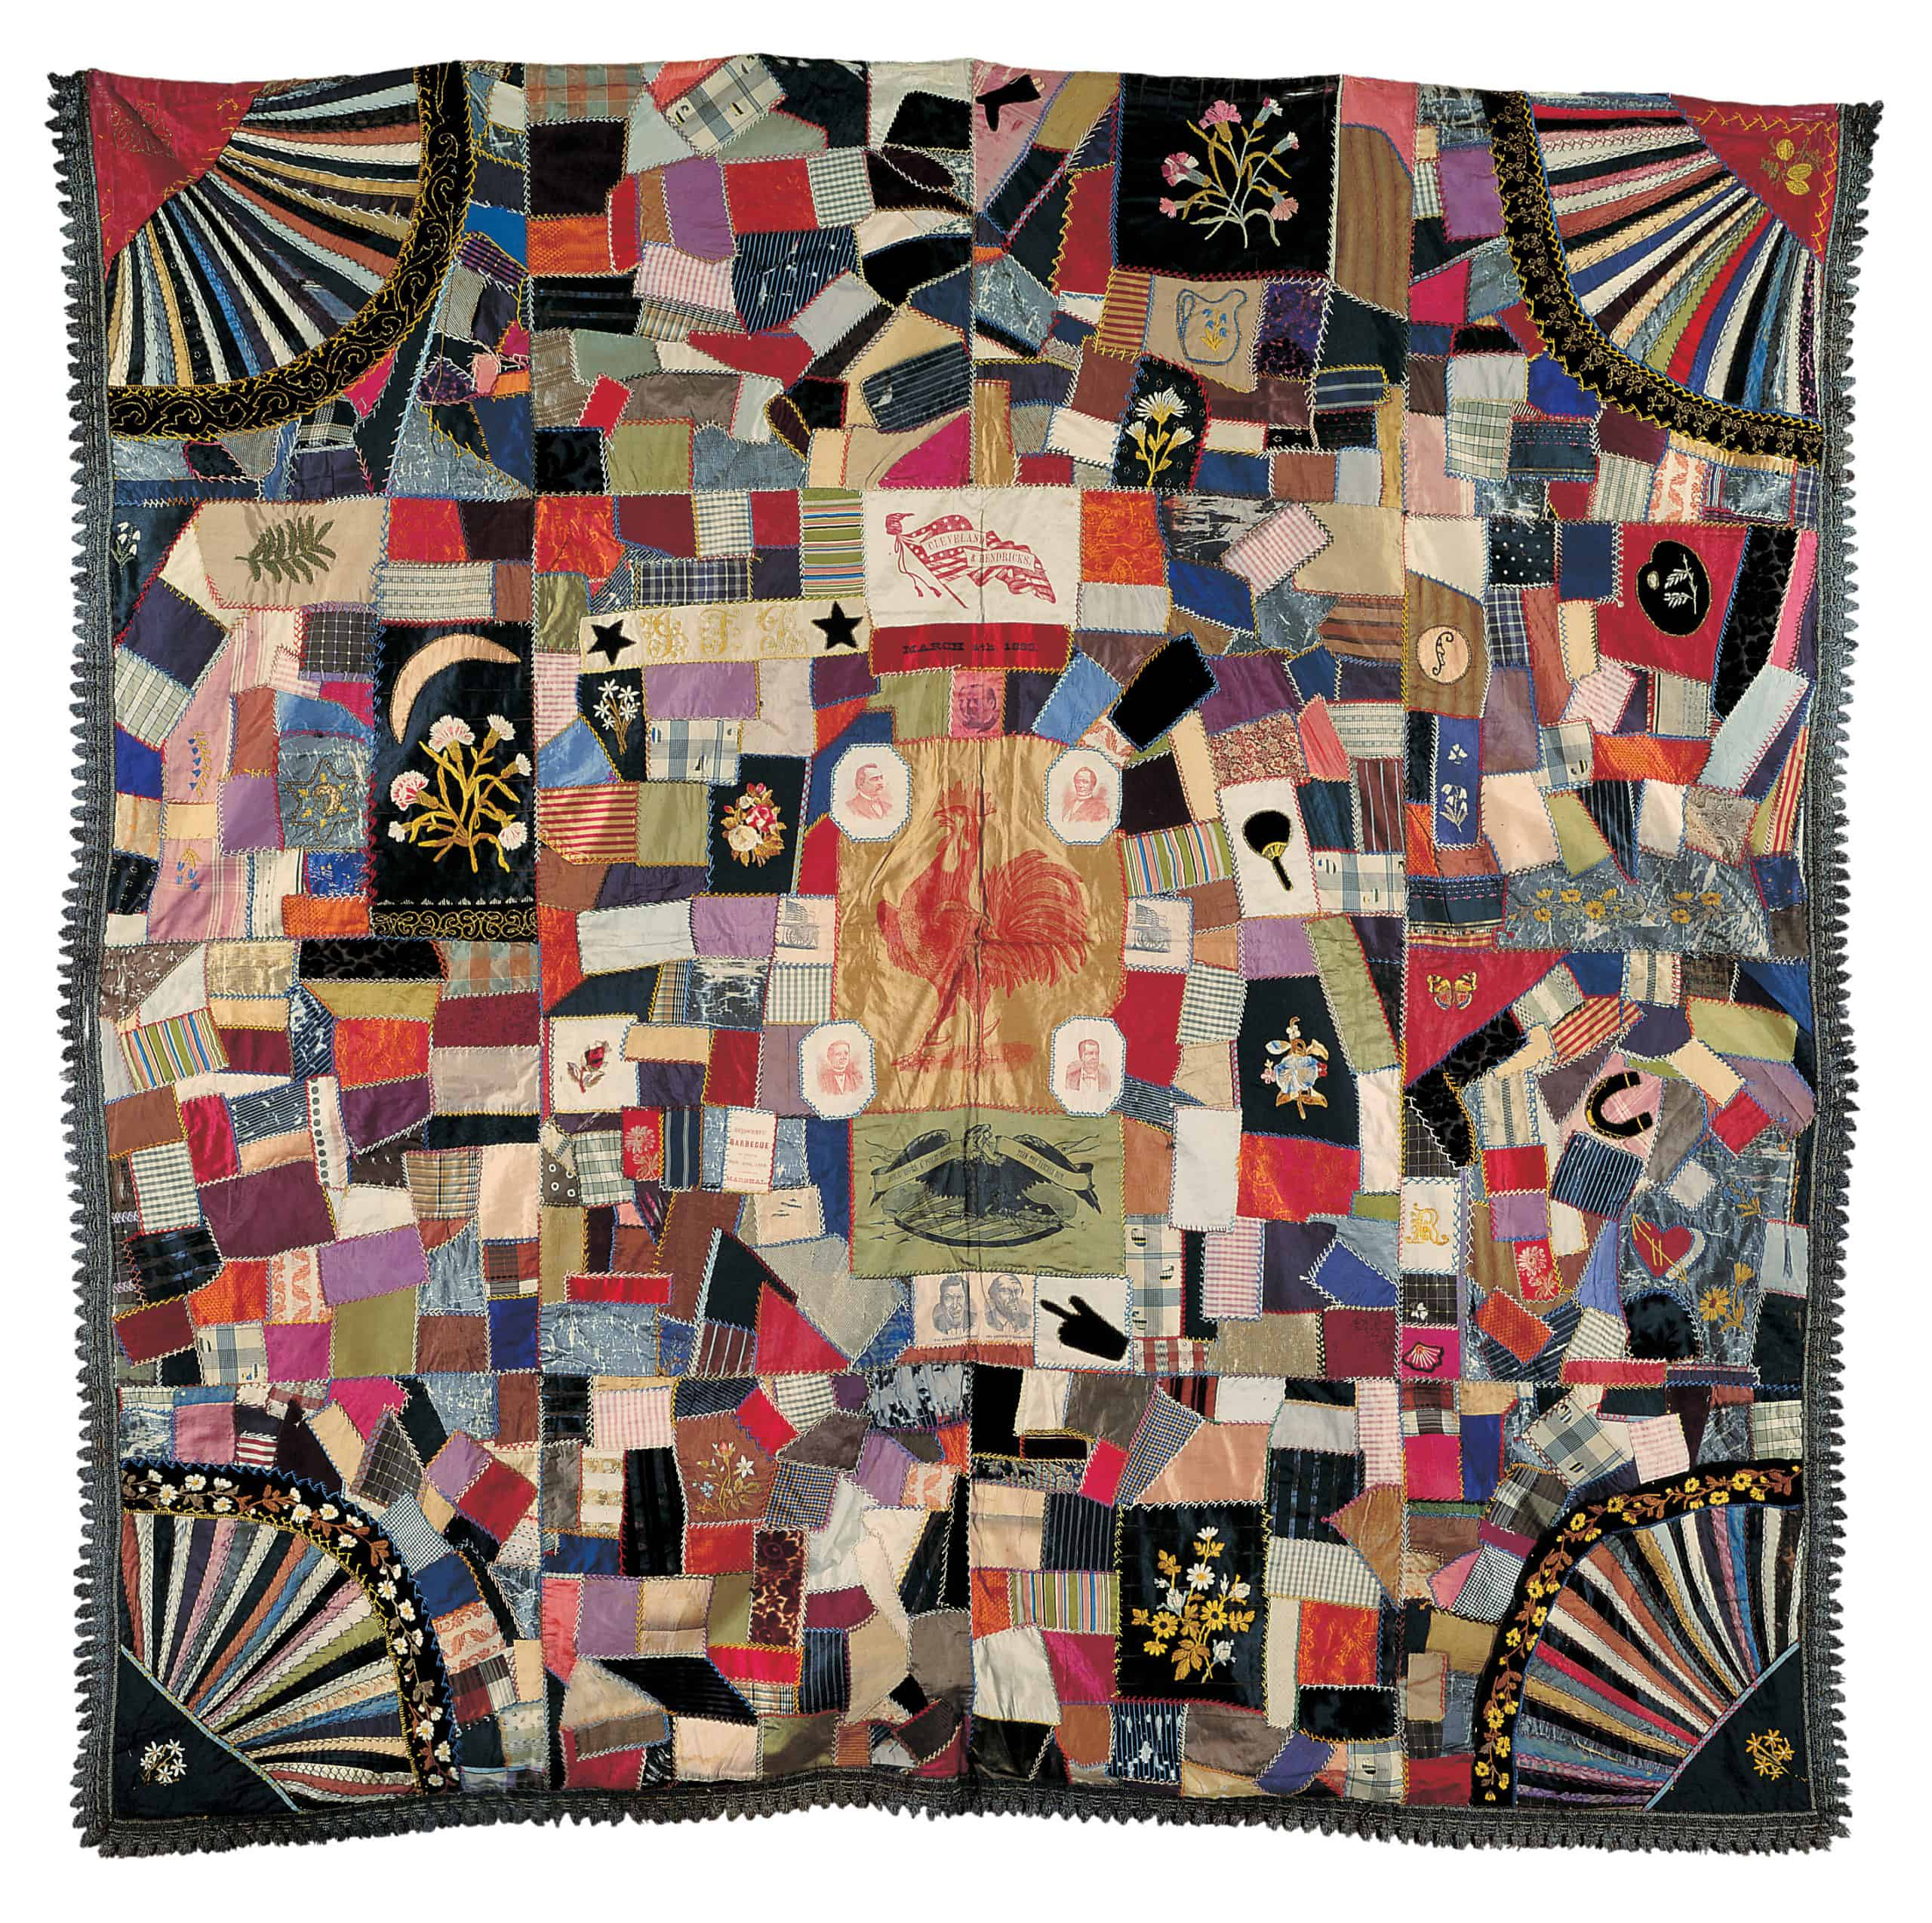 <i>Radical Tradition: American Quilts and Social Change</i> opens at Toledo Museum of Art this November